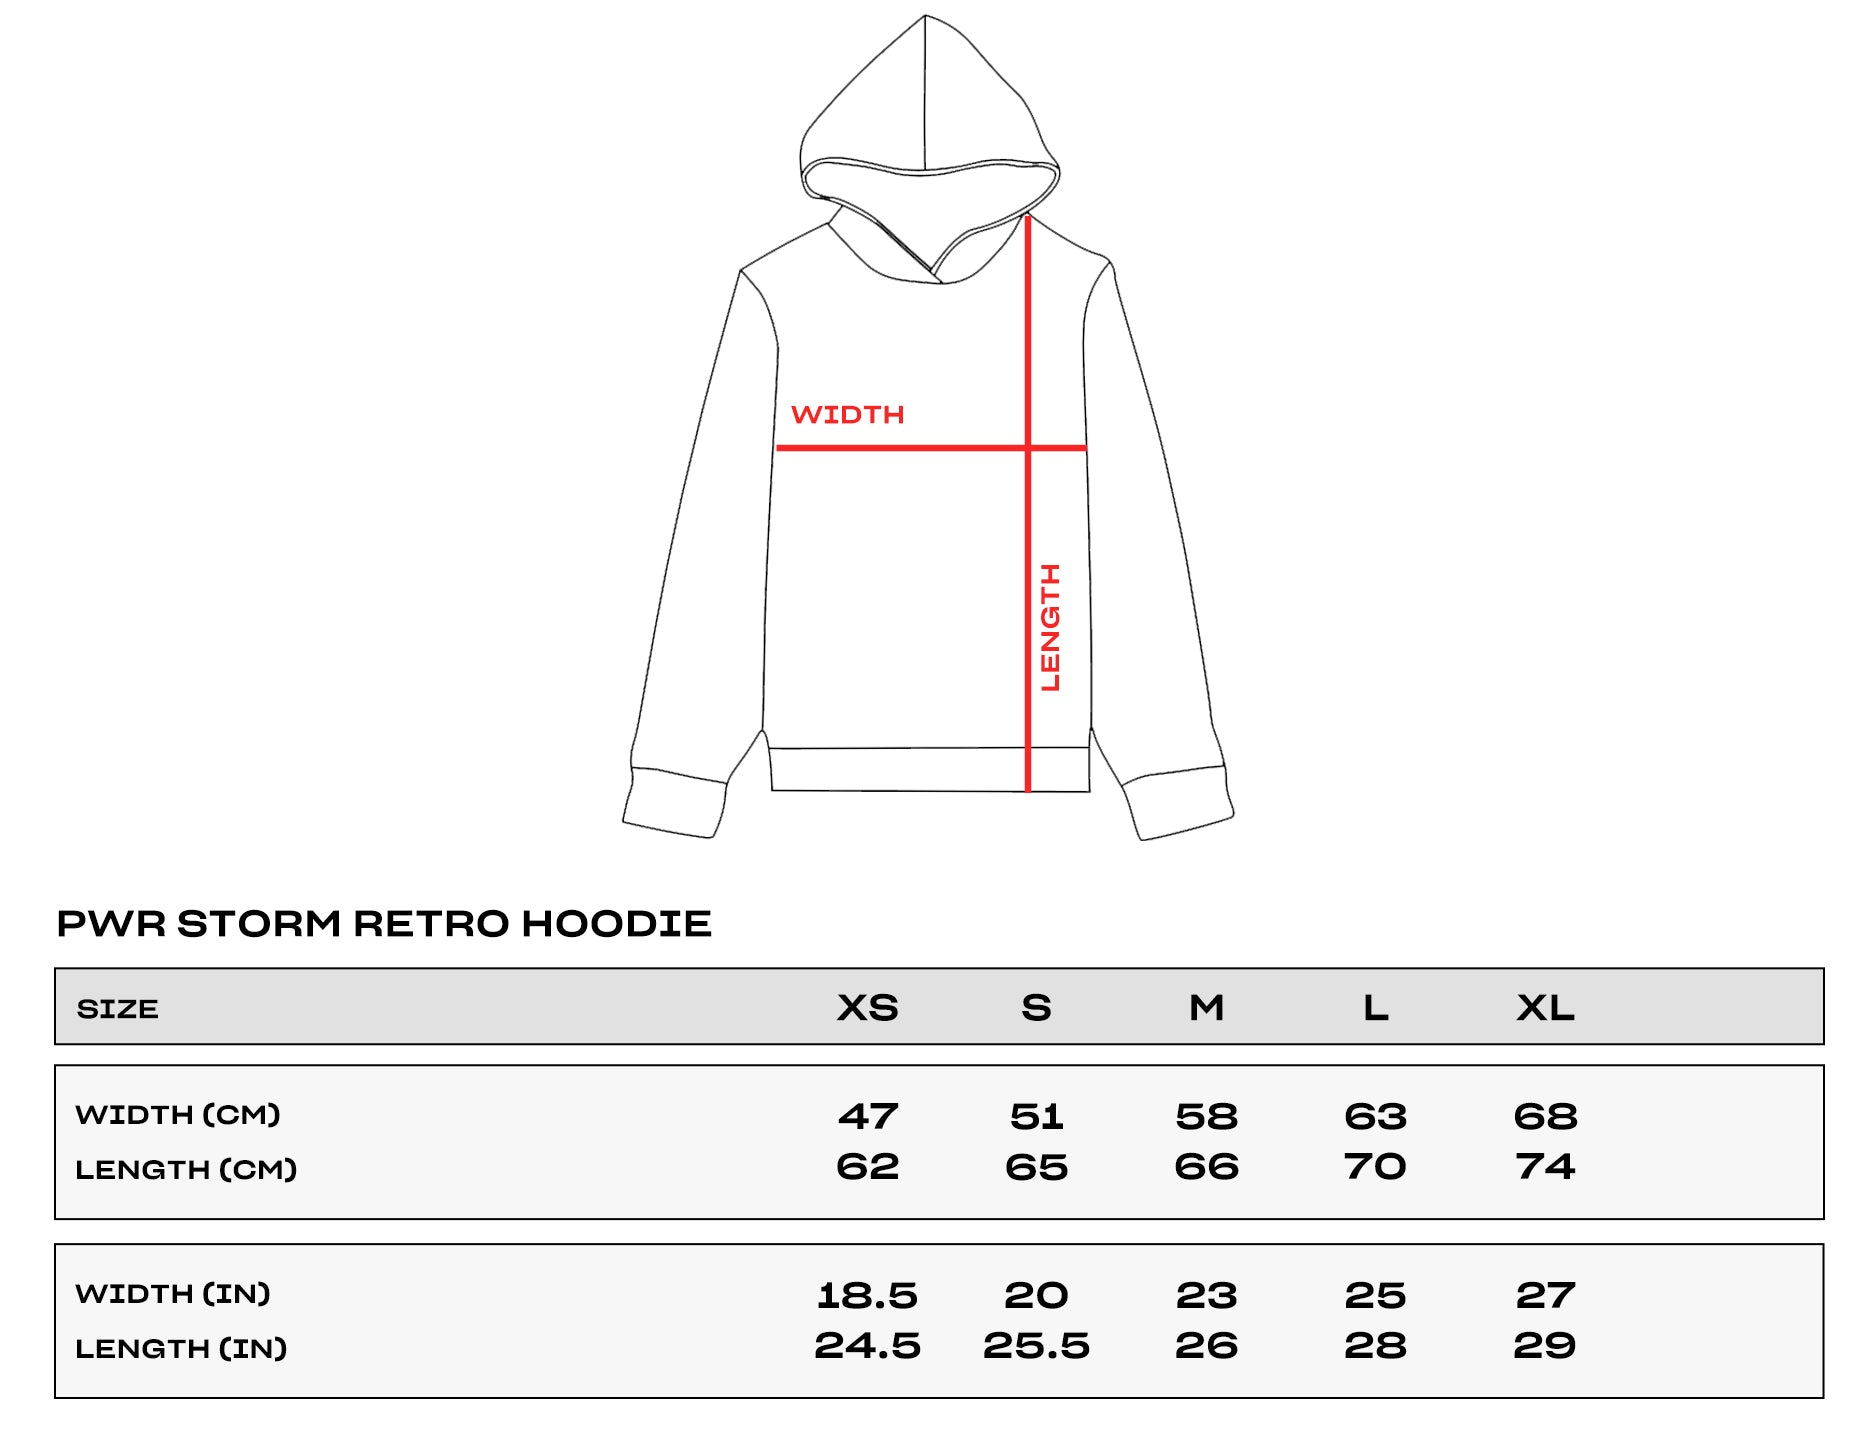 PWR STORM Size Chart Hoodie